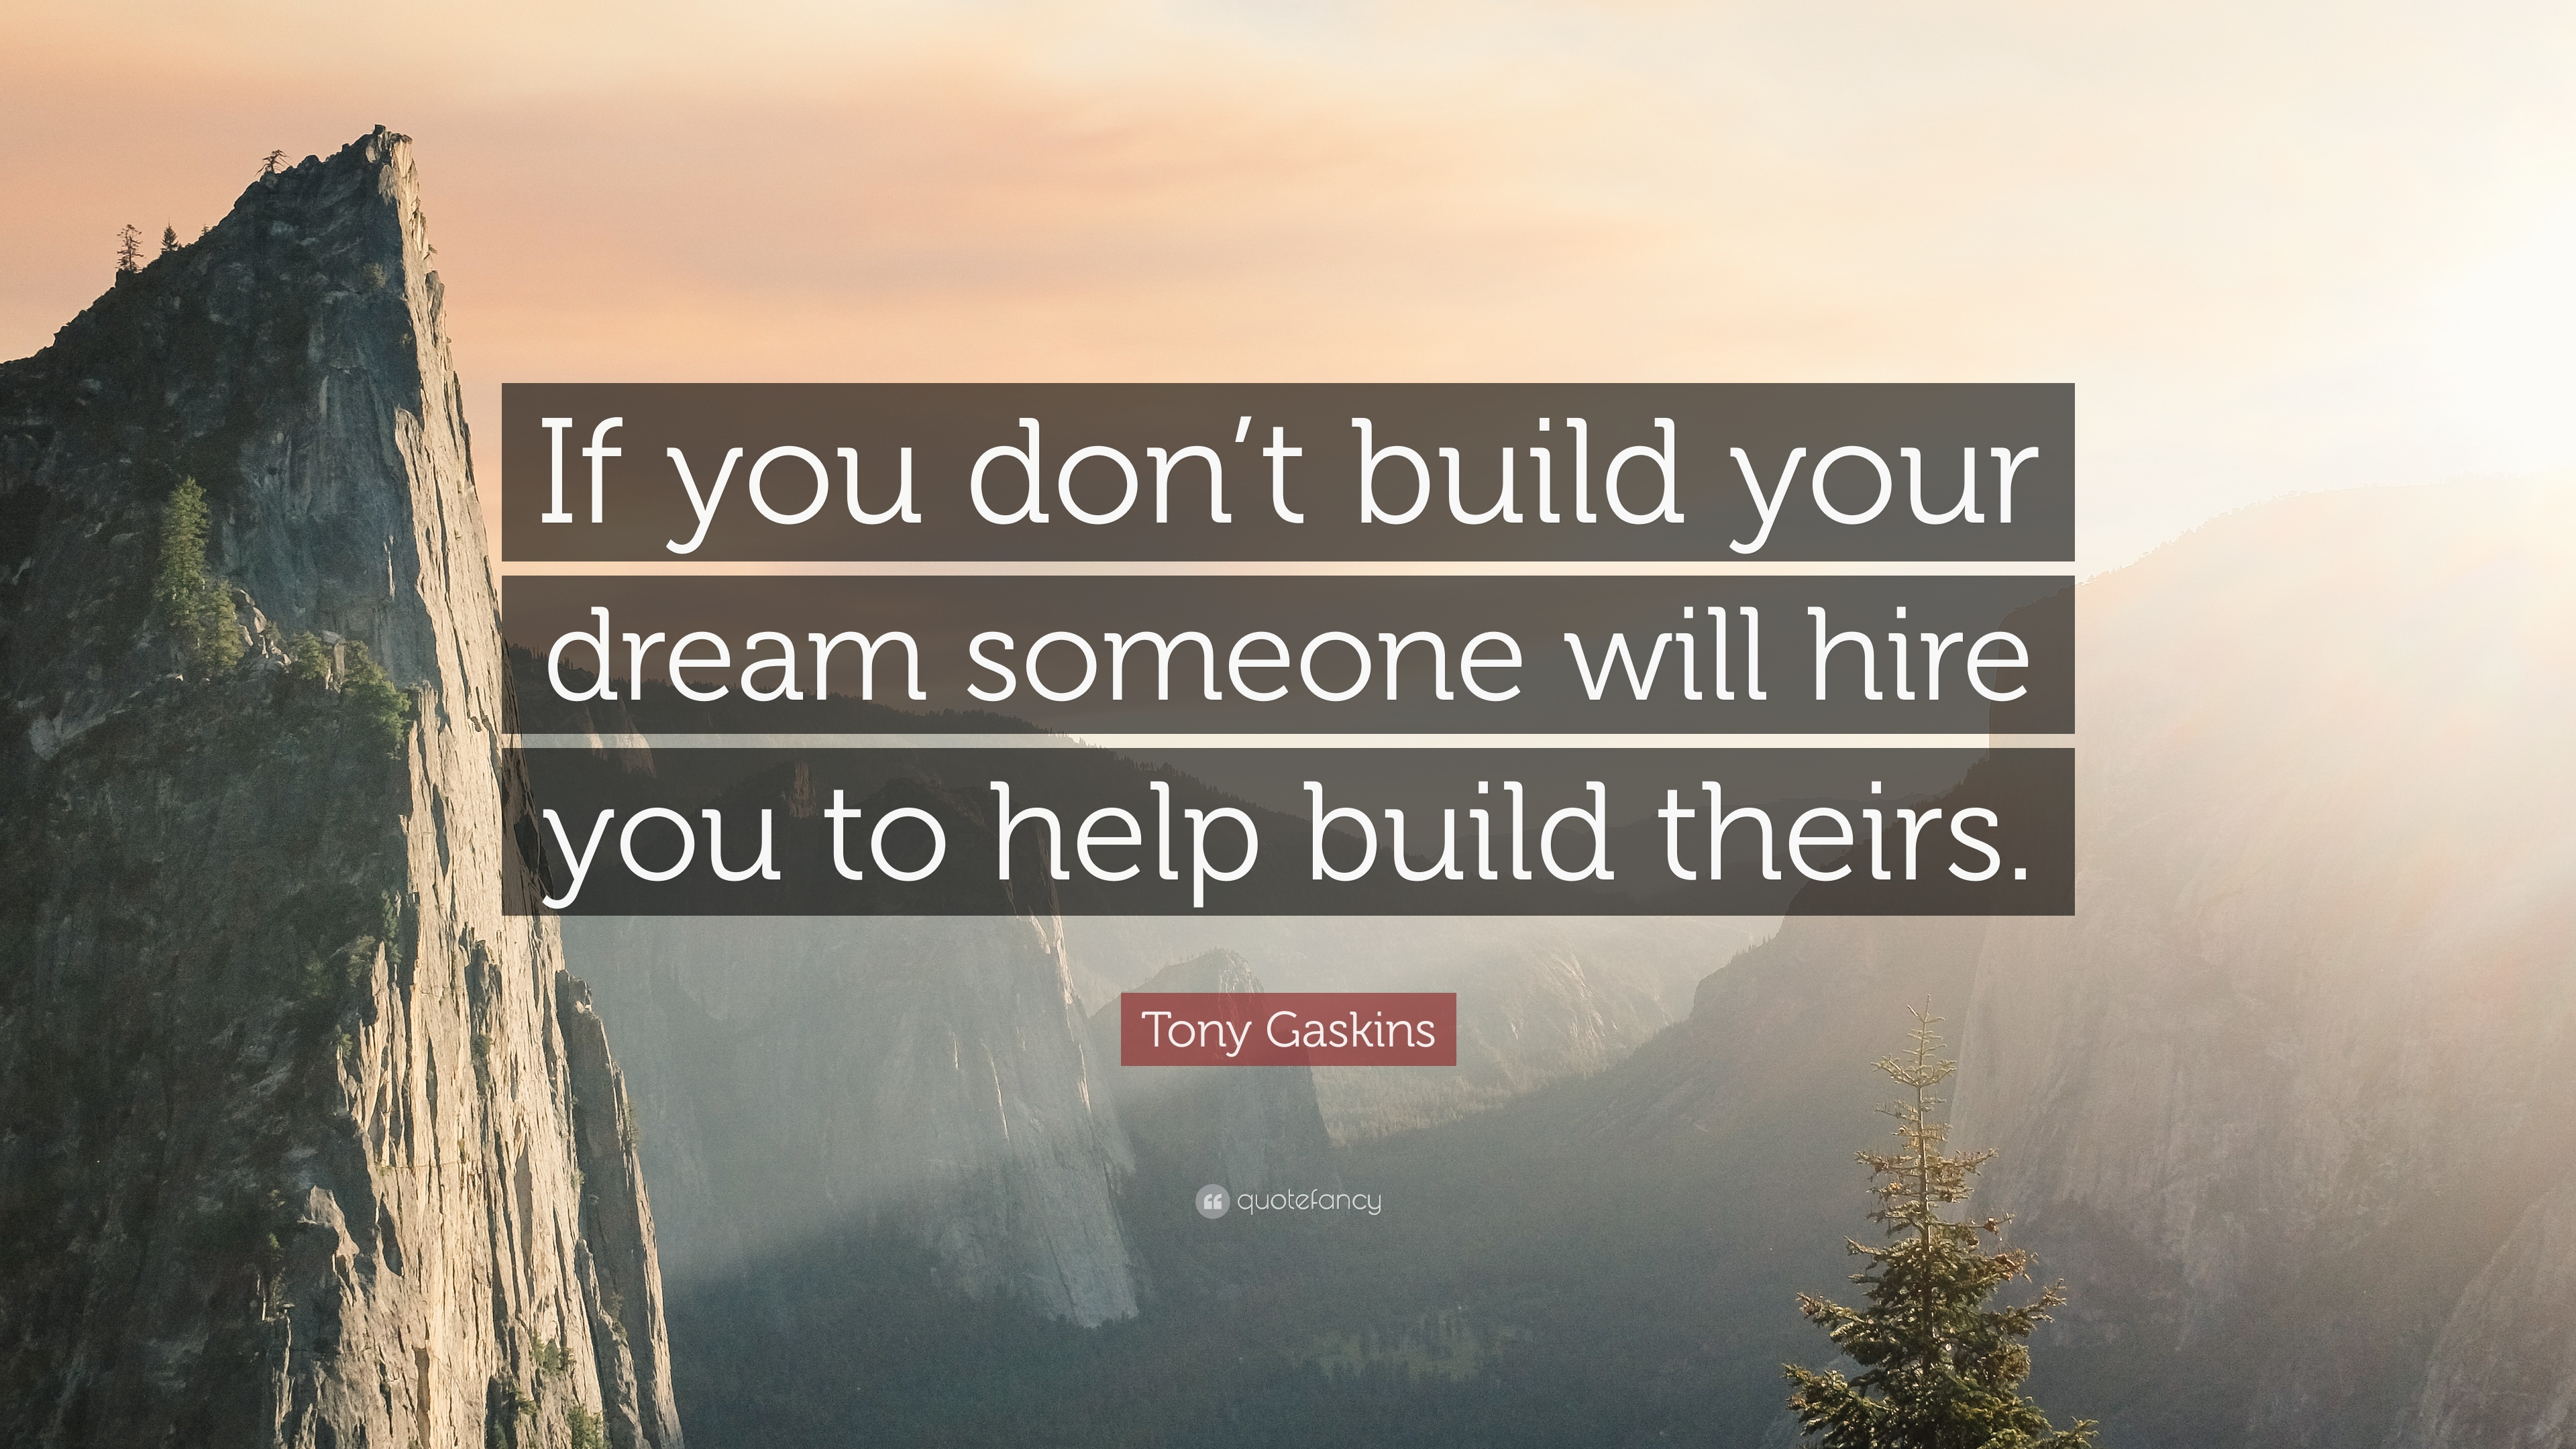 Tony Gaskins Quote: If you dont build your dream someone